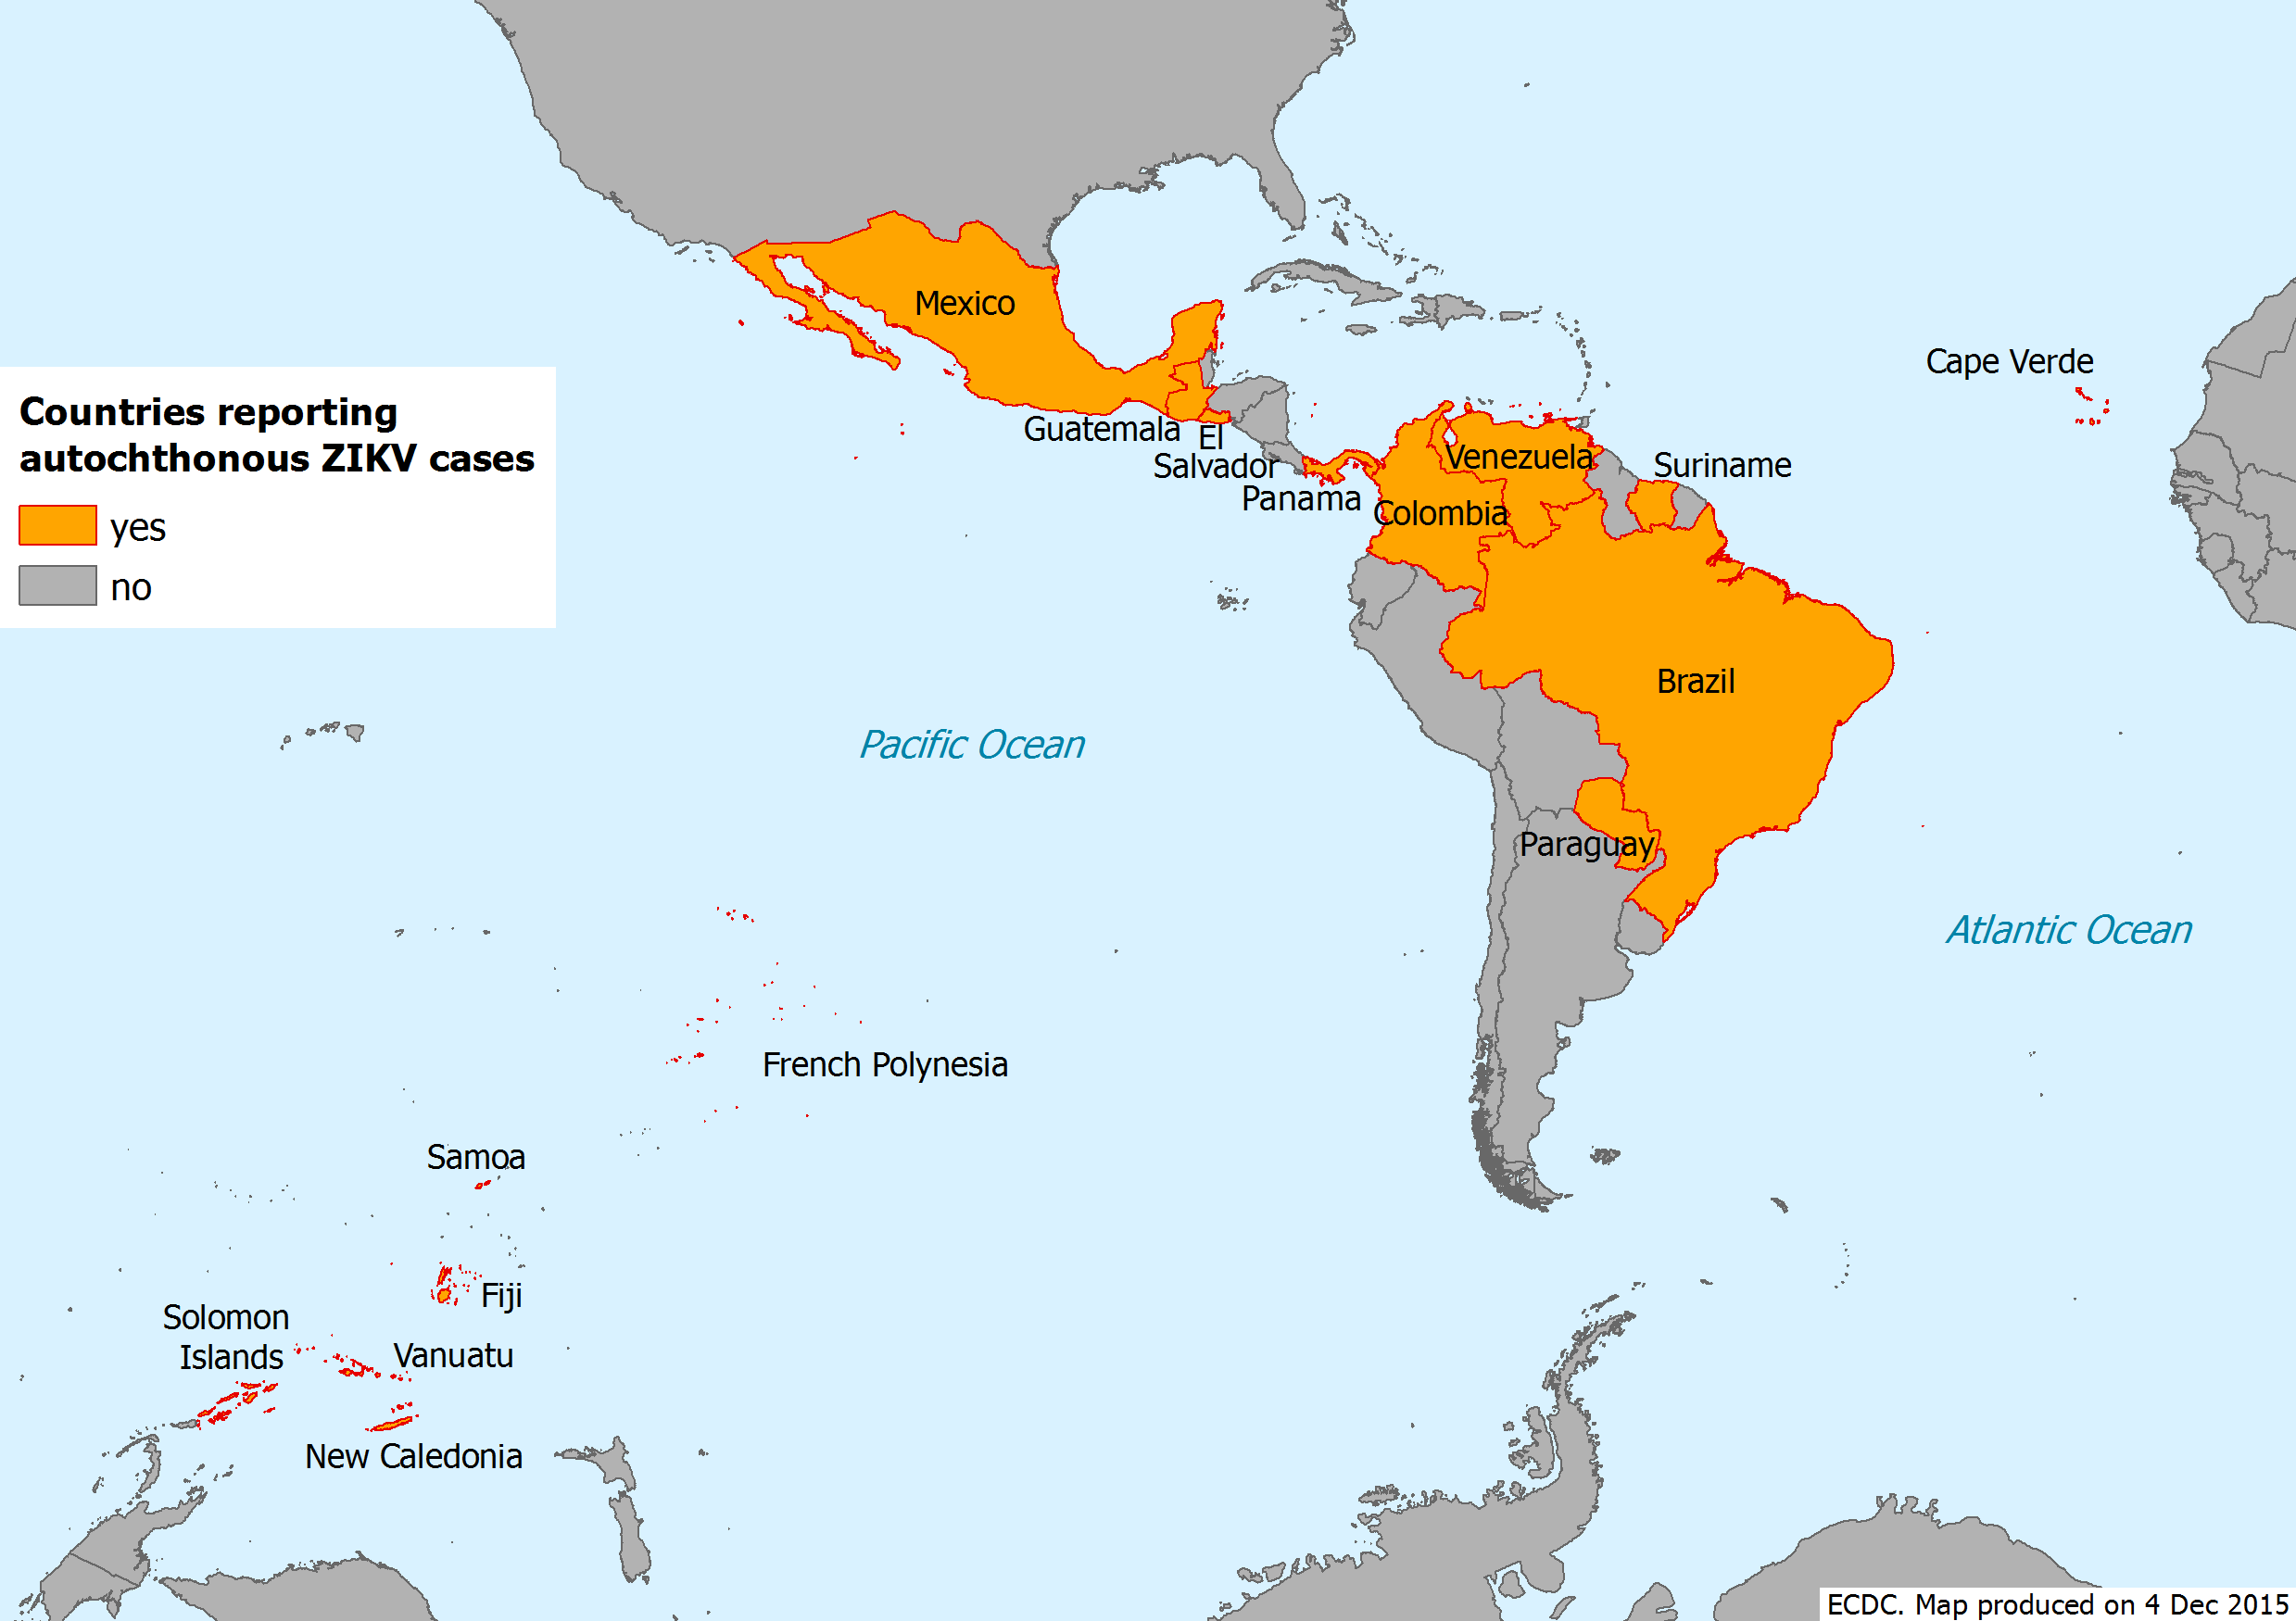 countries-reporting-autochthonous-zika-virus-cases